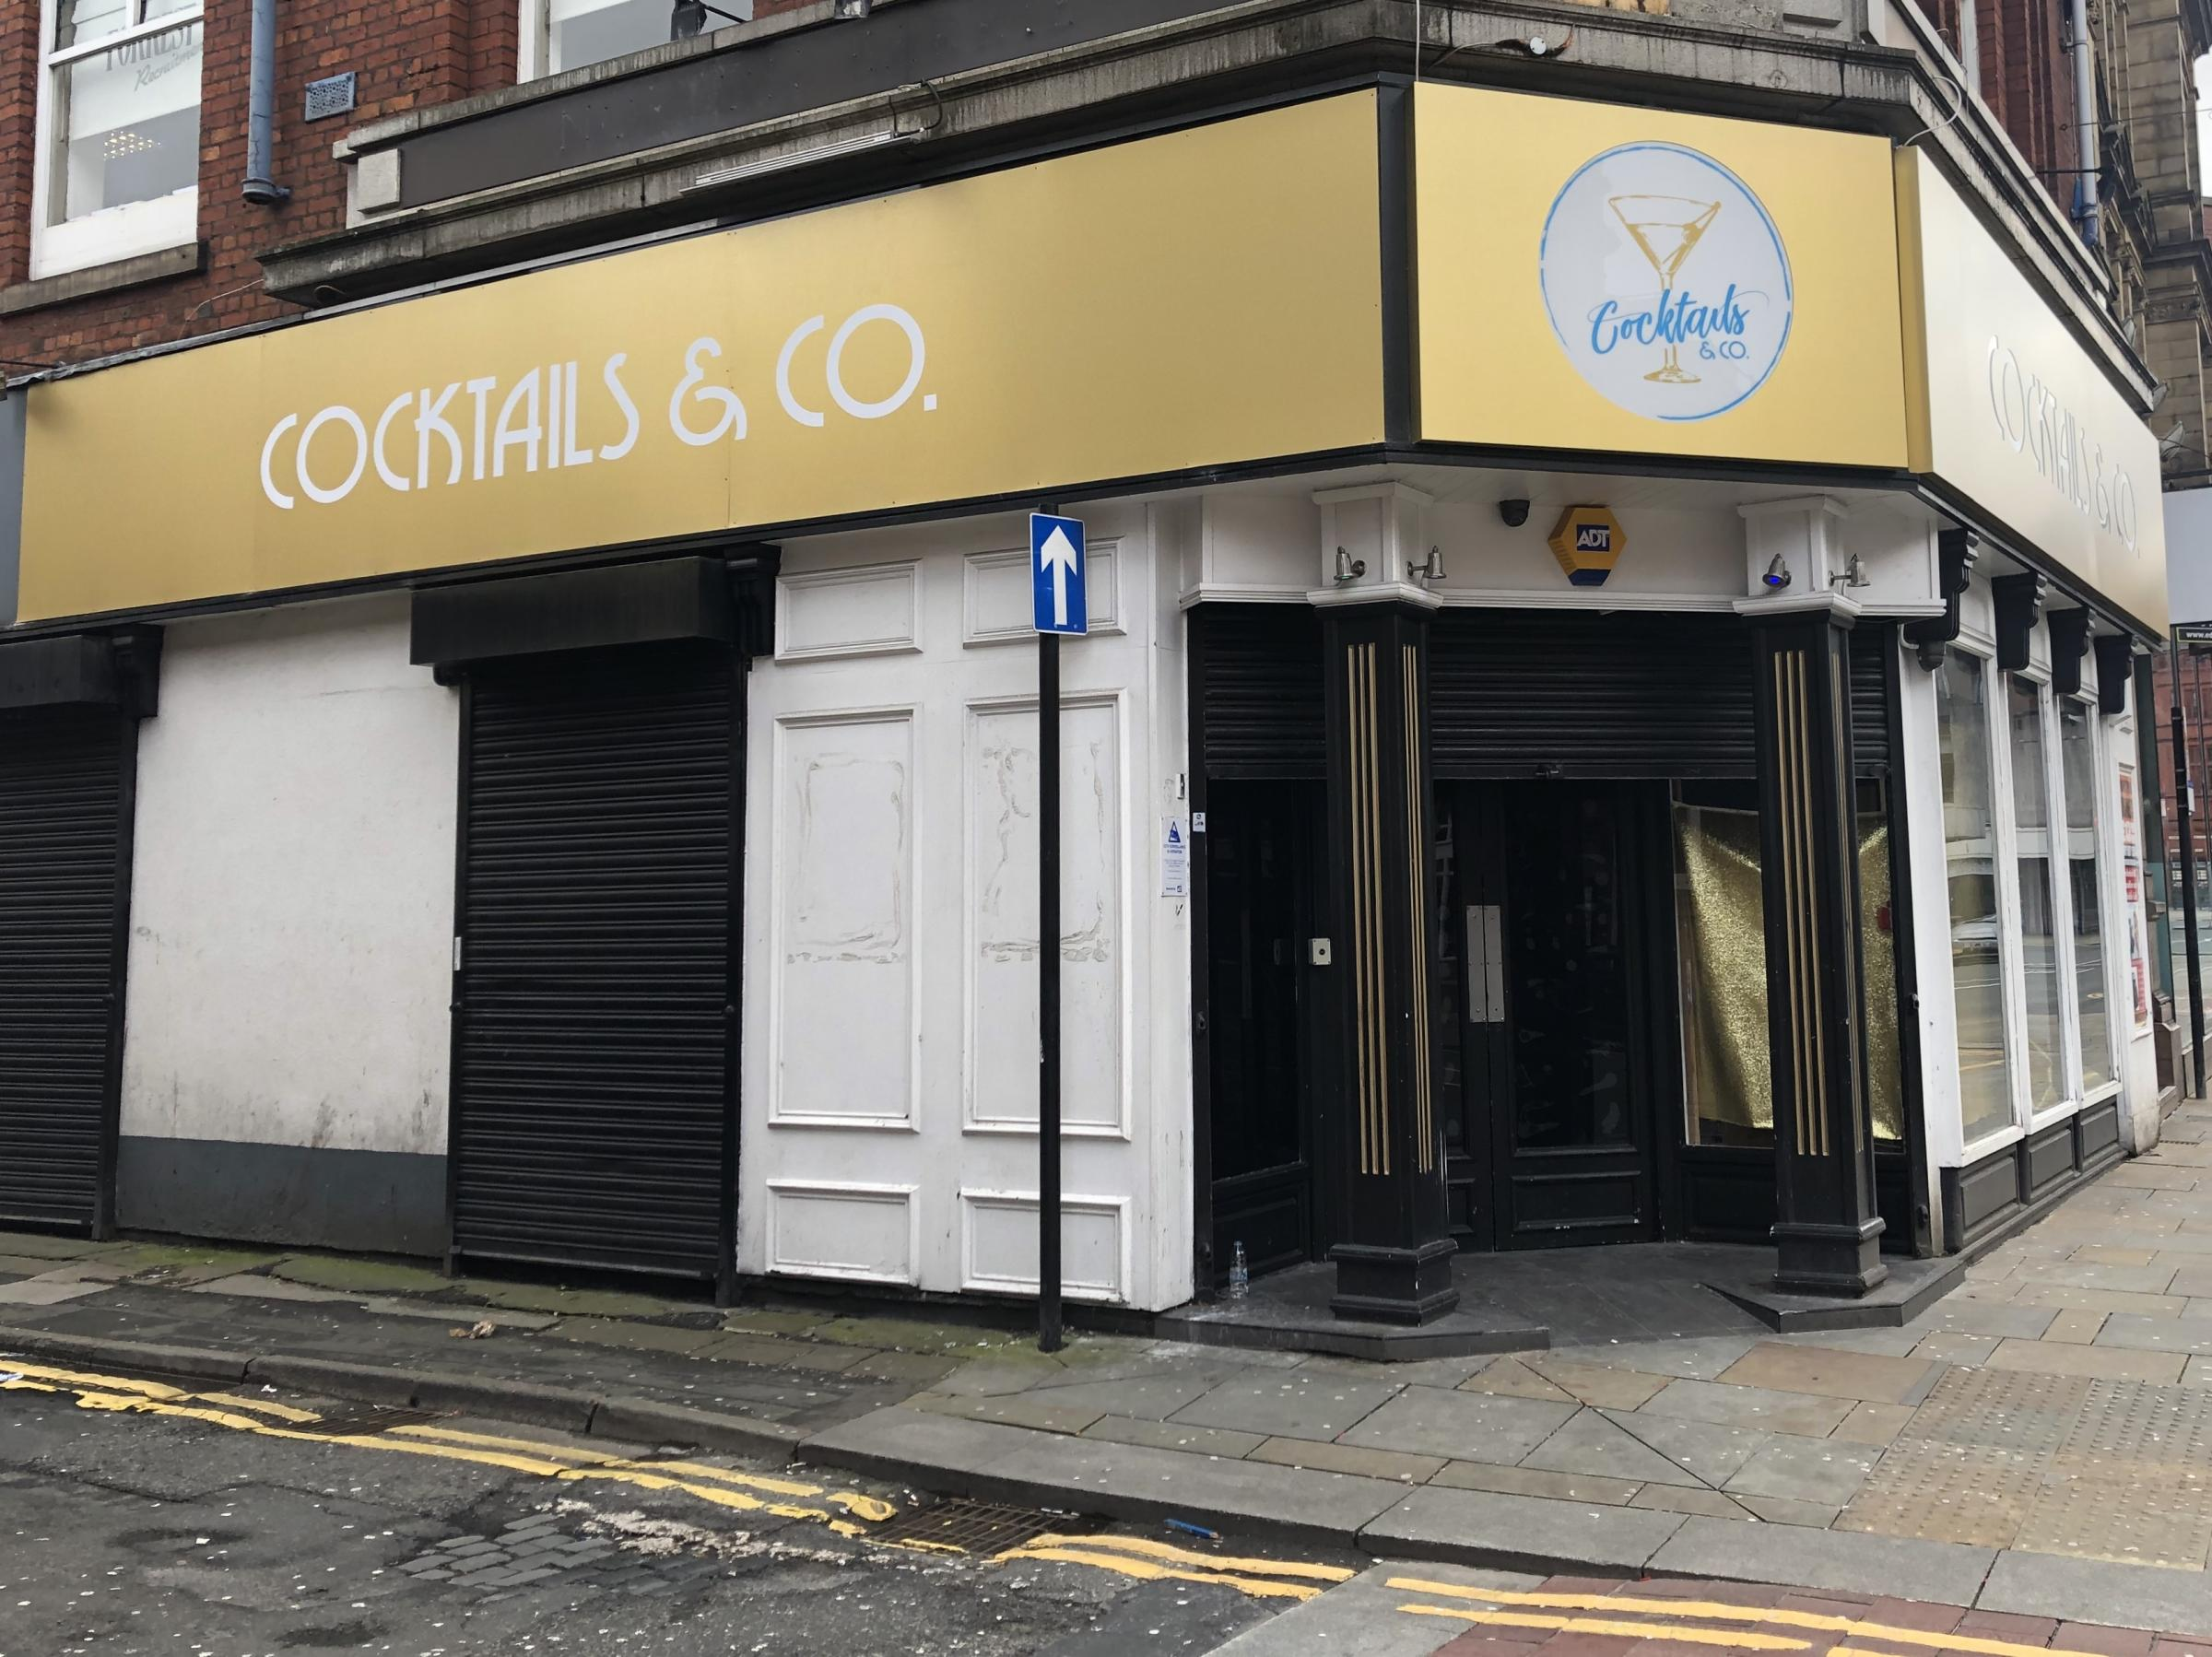 BRAND NEW: Cocktails & Co, which opens in Bradshawgate this weekend